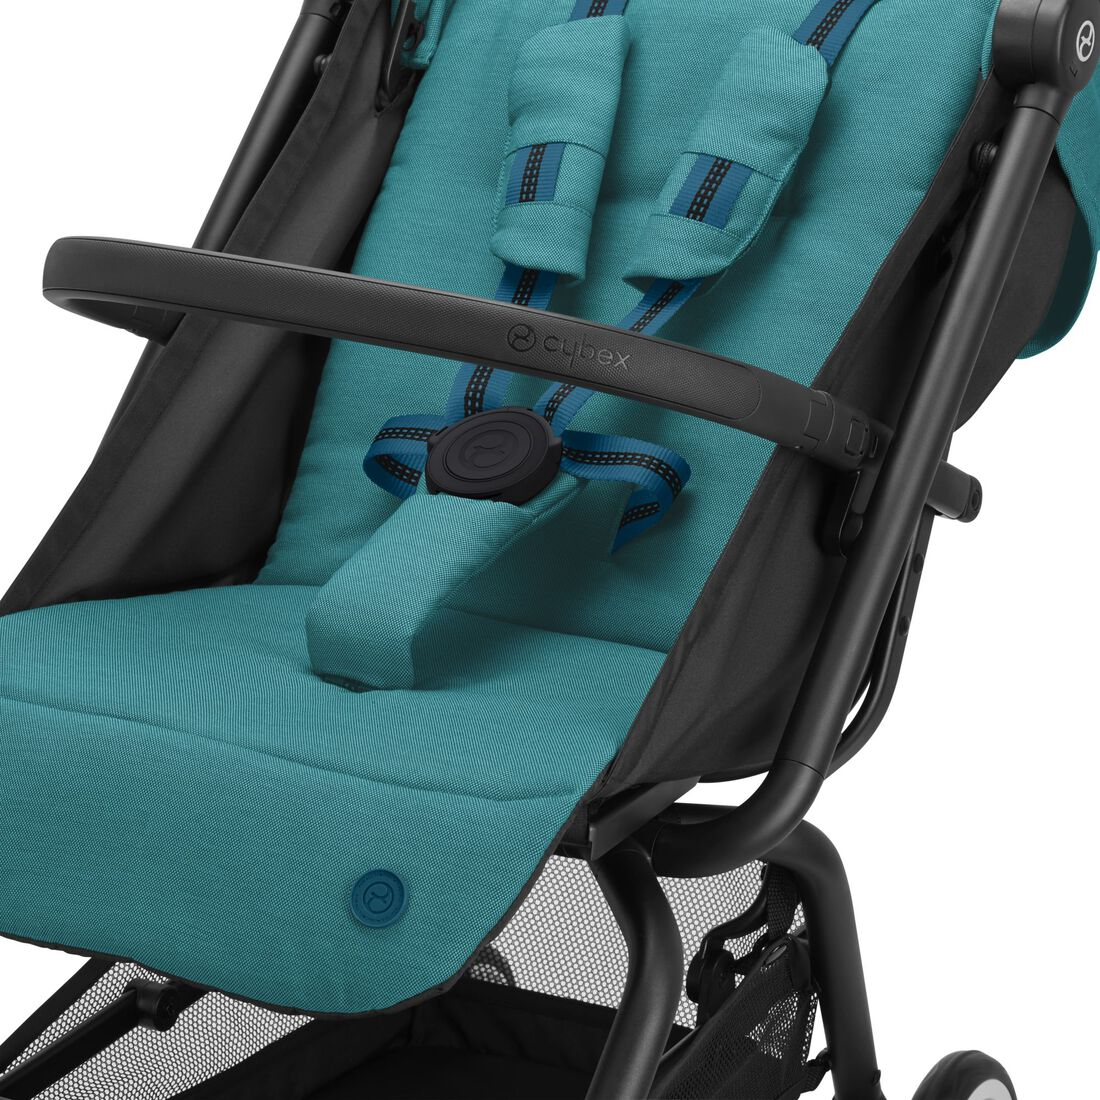 CYBEX Eezy S 2 - River Blue in River Blue large Bild 4